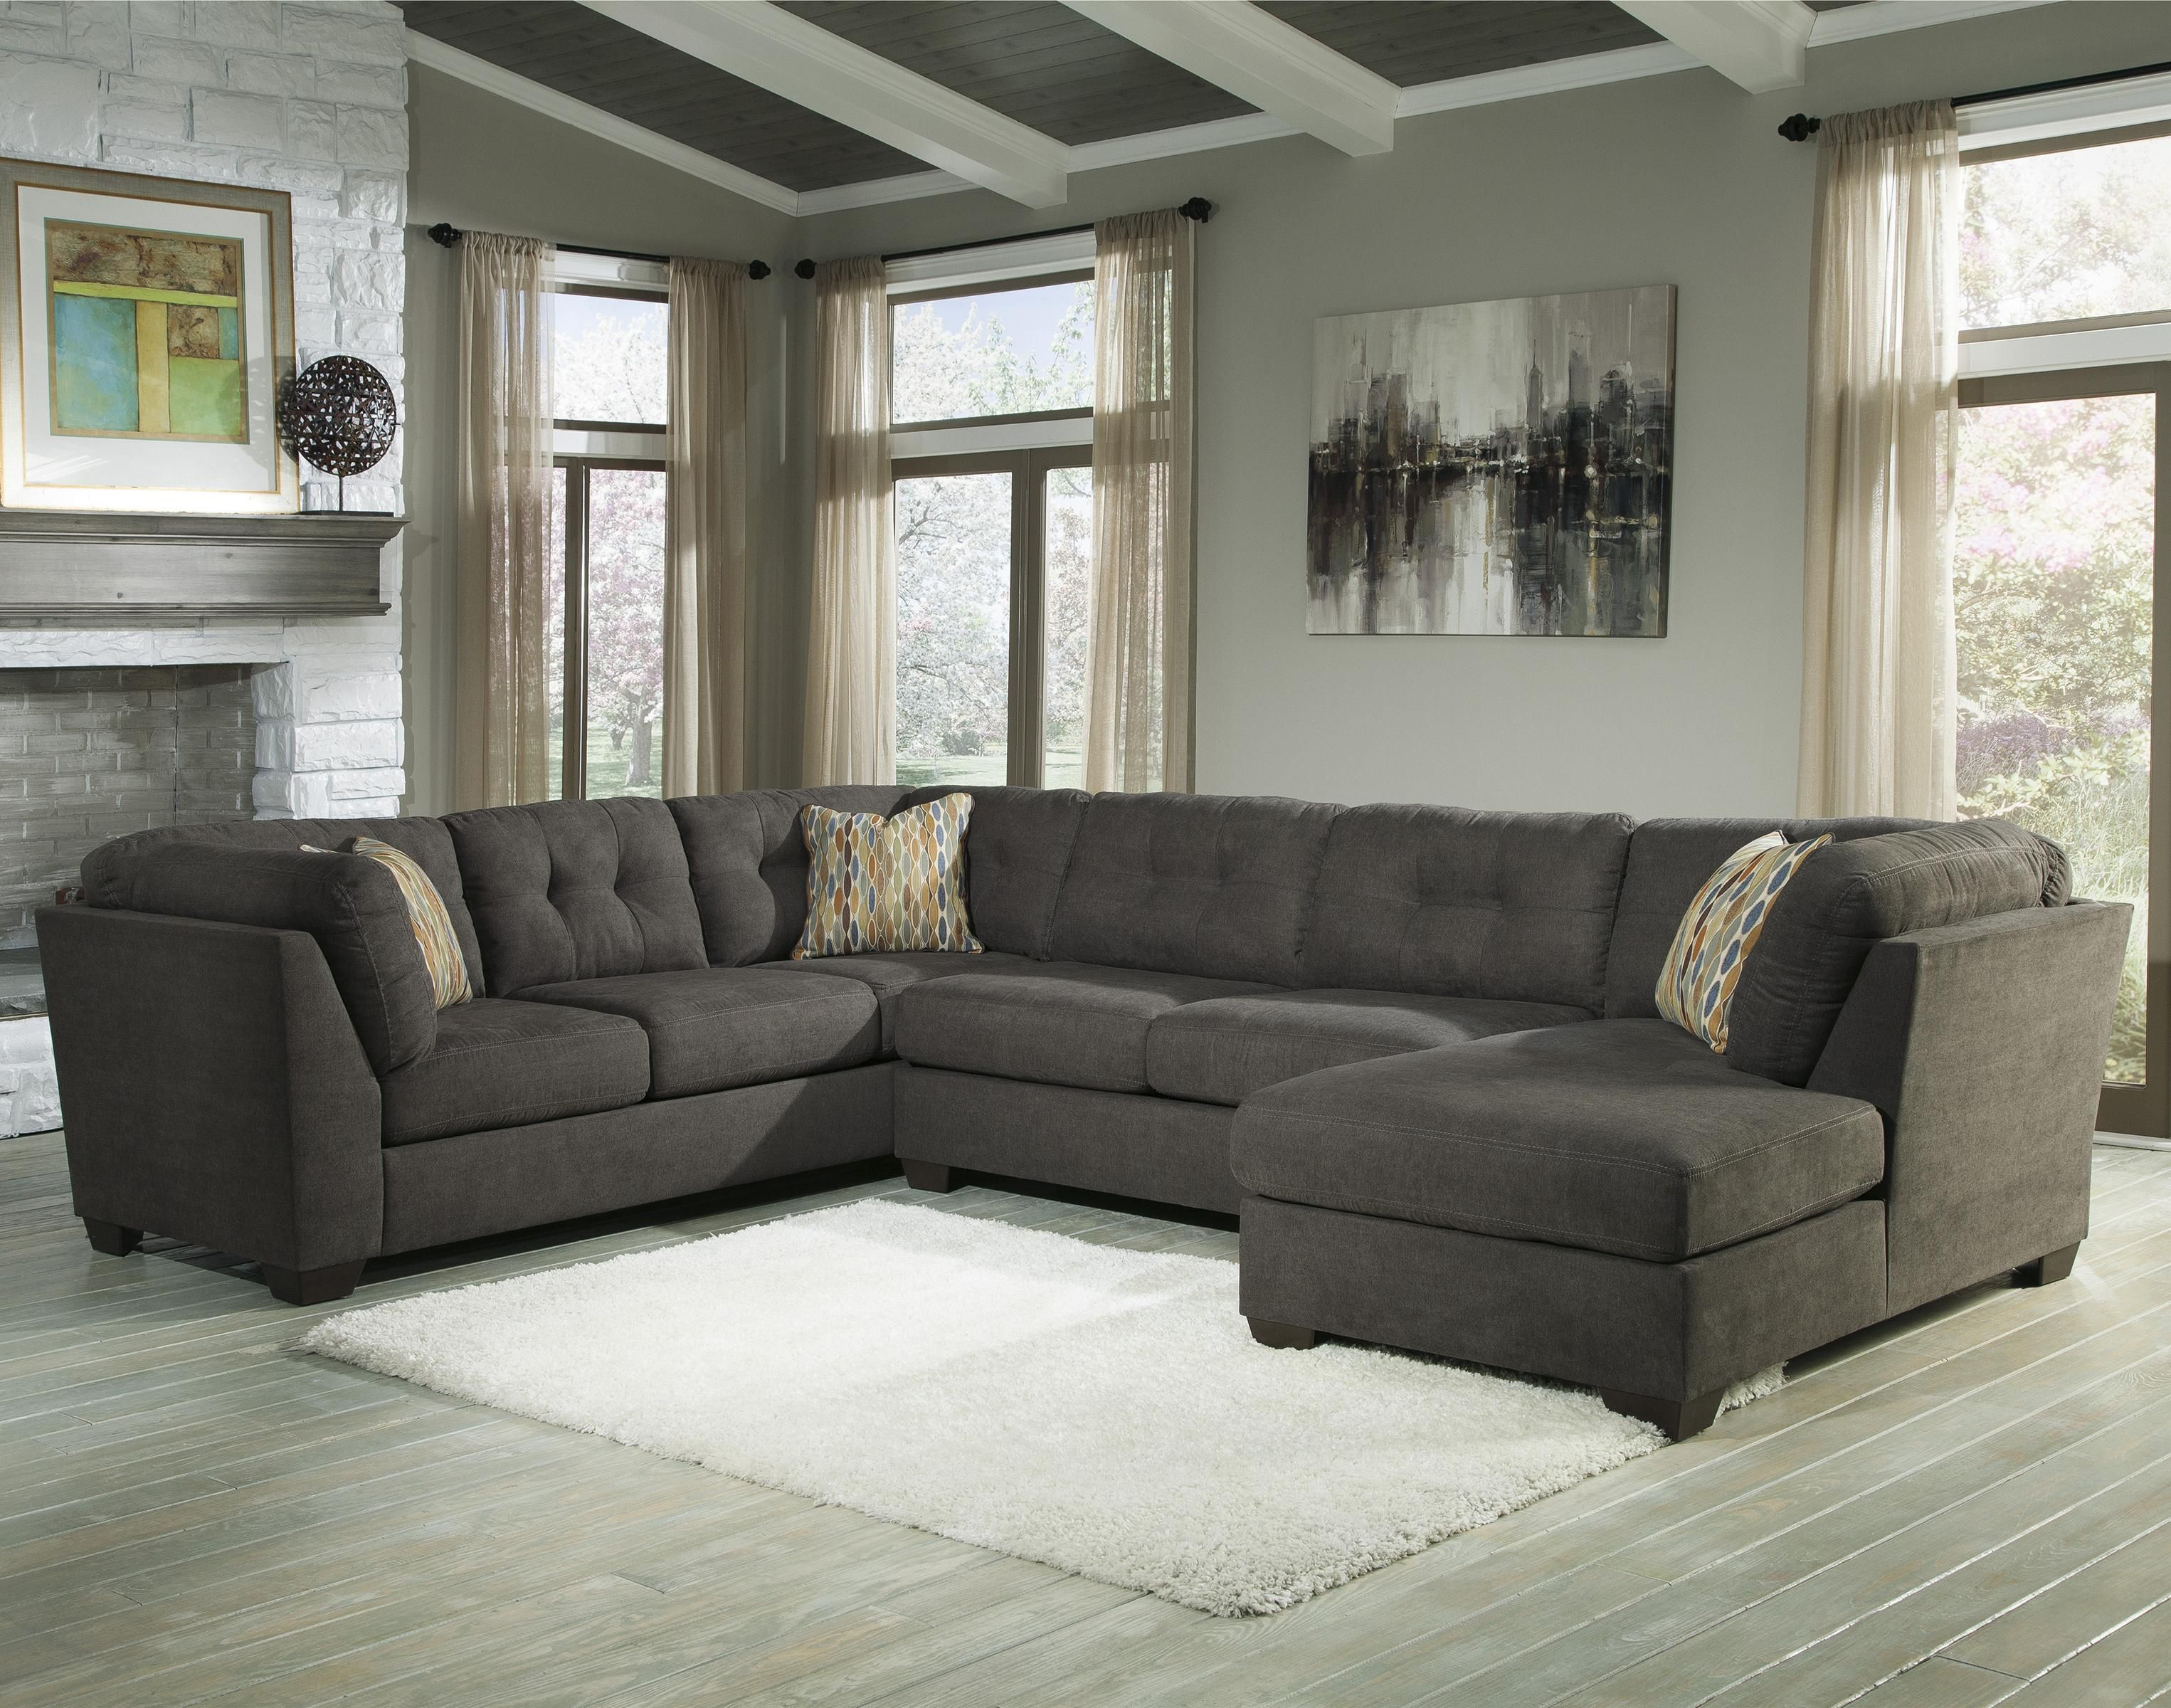 Delta City Steel 3 Piece Modular Sectional With Right Chaise By Benchcraft Living Room